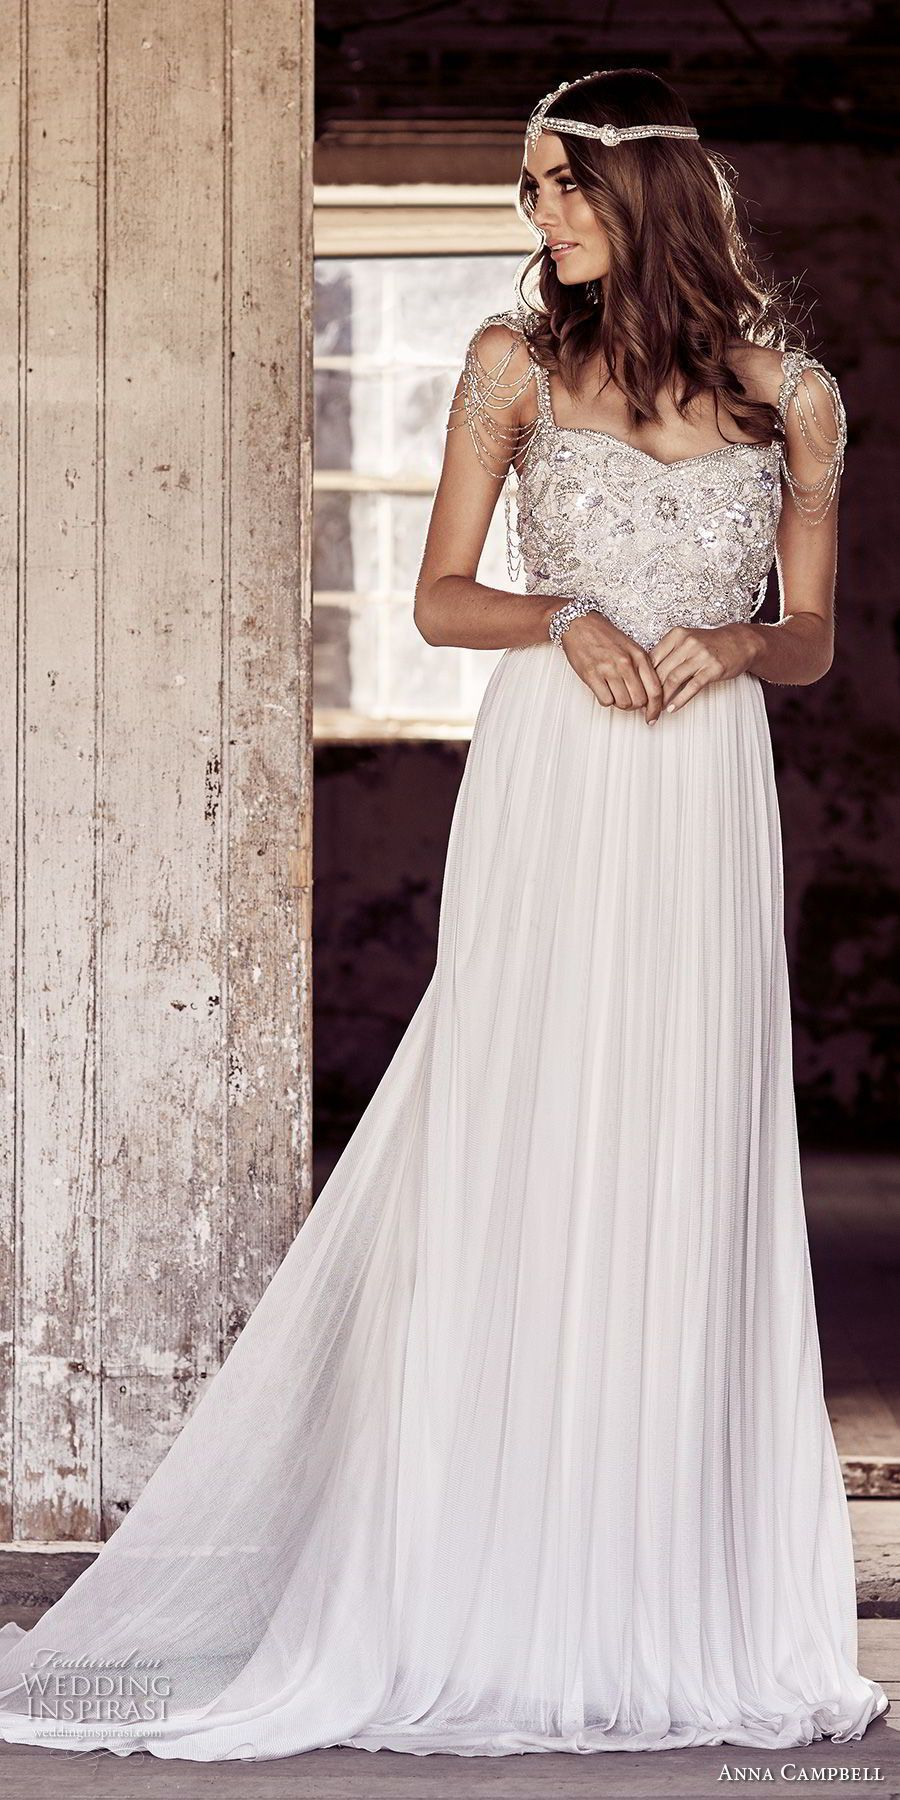 Anna campbell bridal jeweled sleeves strap sweetheart neckline